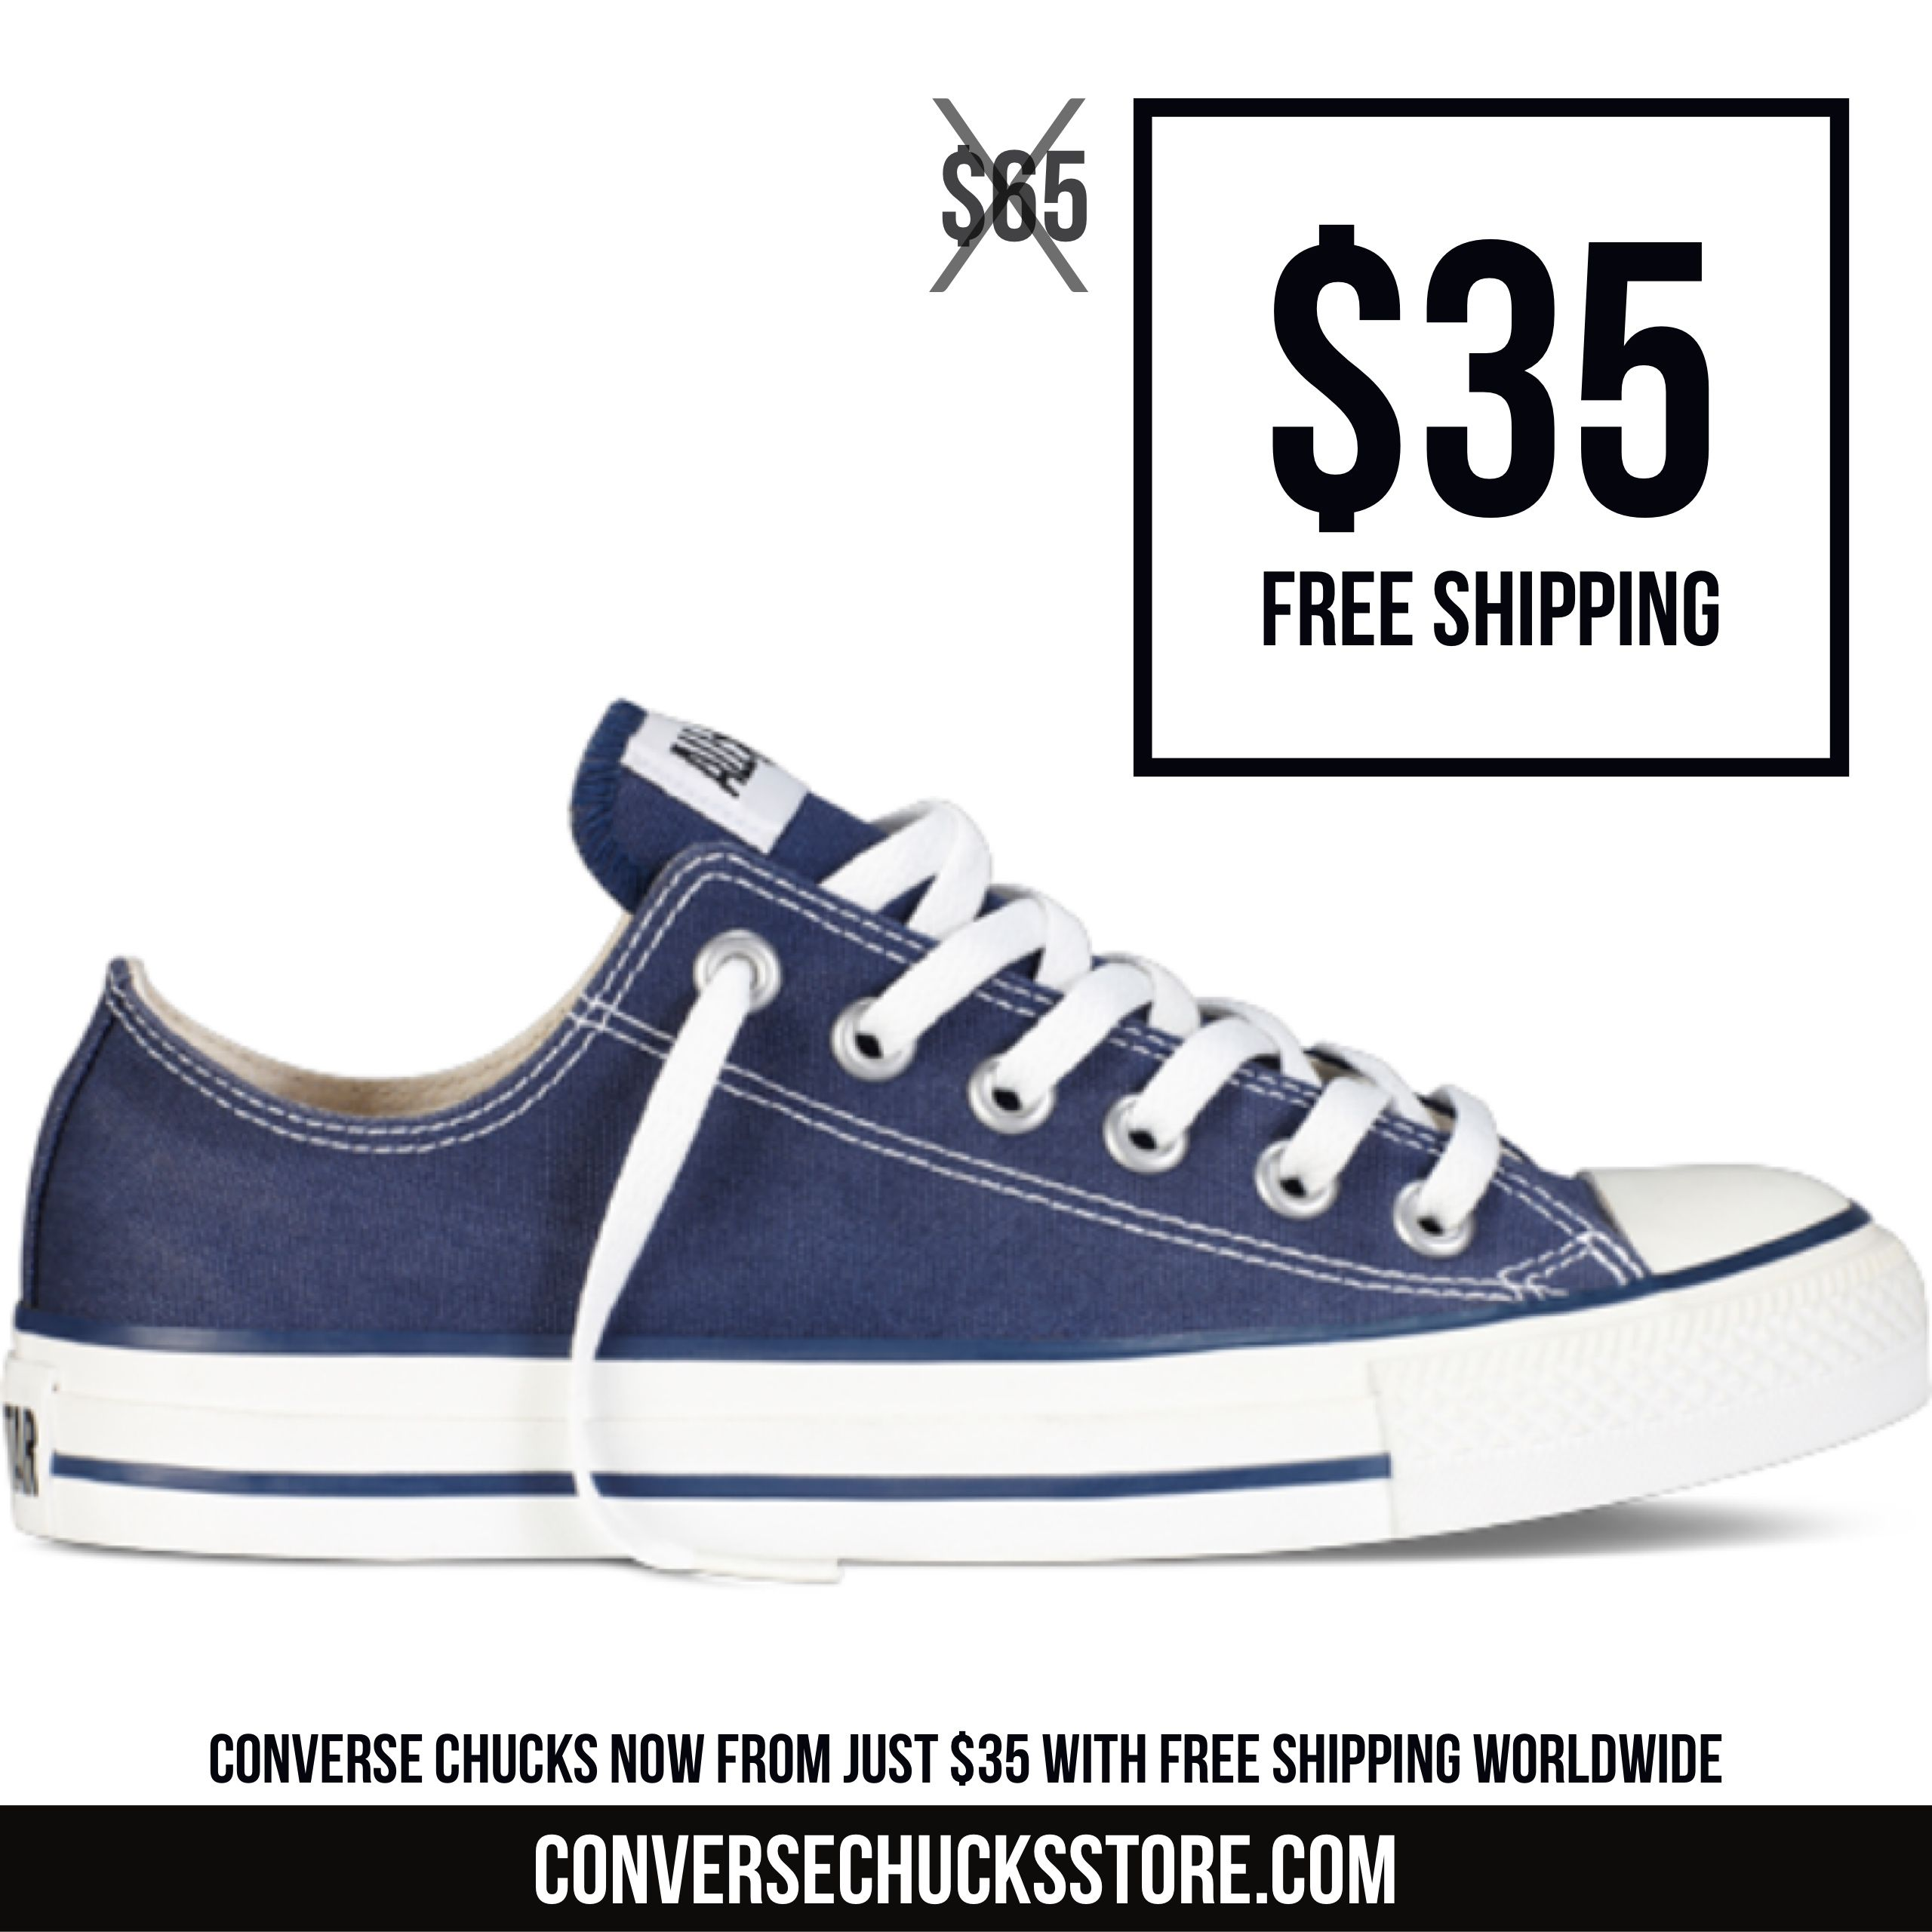 5d5dd001a2d3 Converse Chuck Taylors from  35 with free worldwide shipping. Order now on  our website